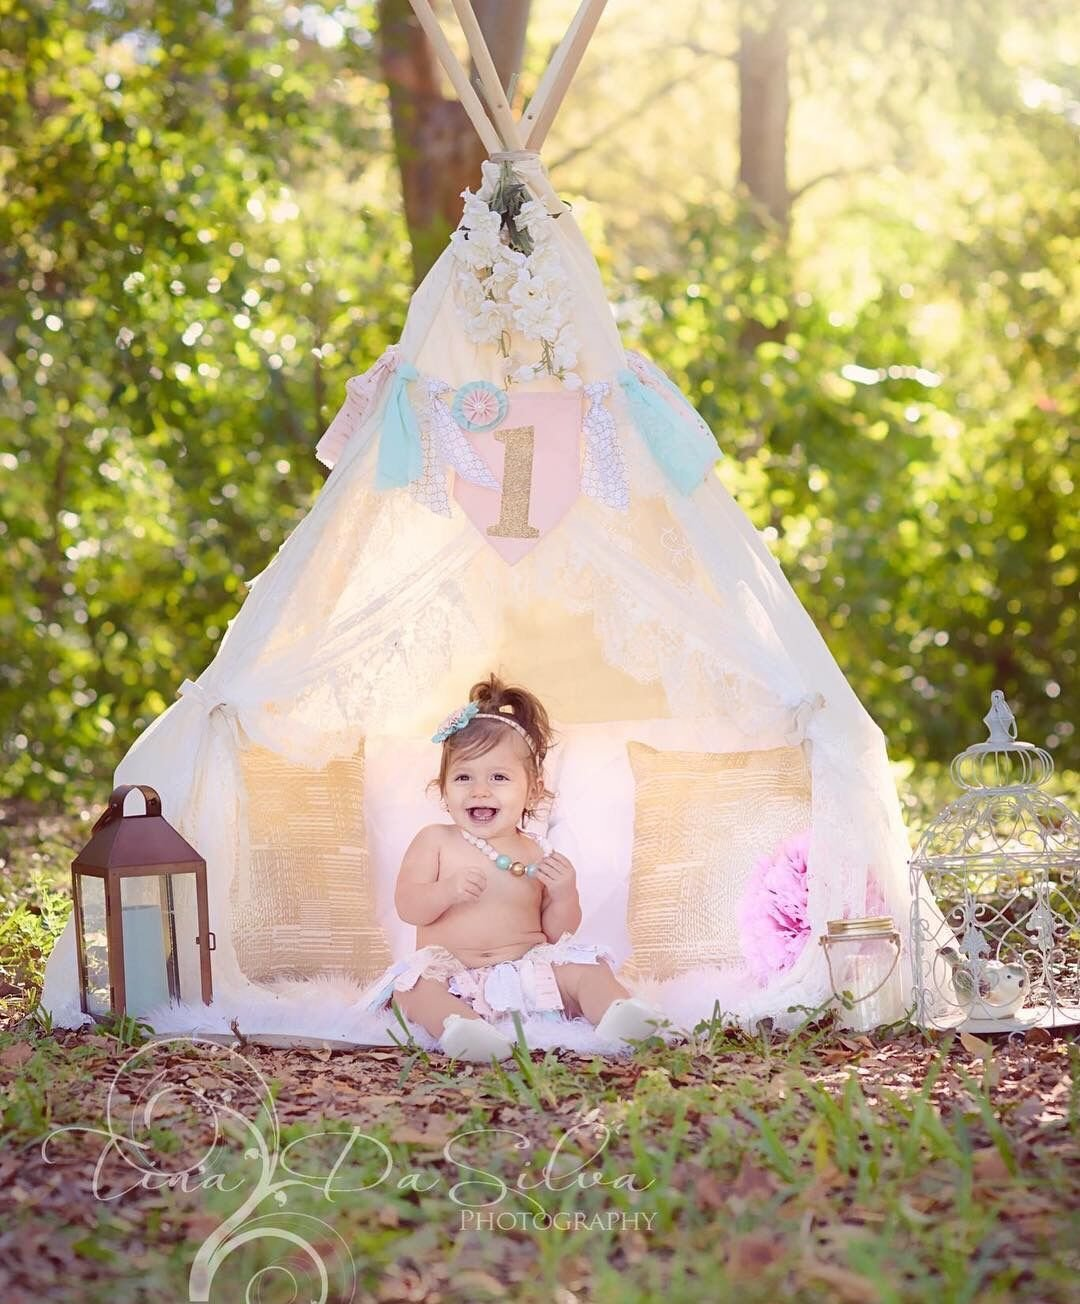 Little Dove Floral Classic Ivory Kids Teepee Kids Play Tent Childrens Play House Tipi Kids Room Decor by little dove (Image #6)